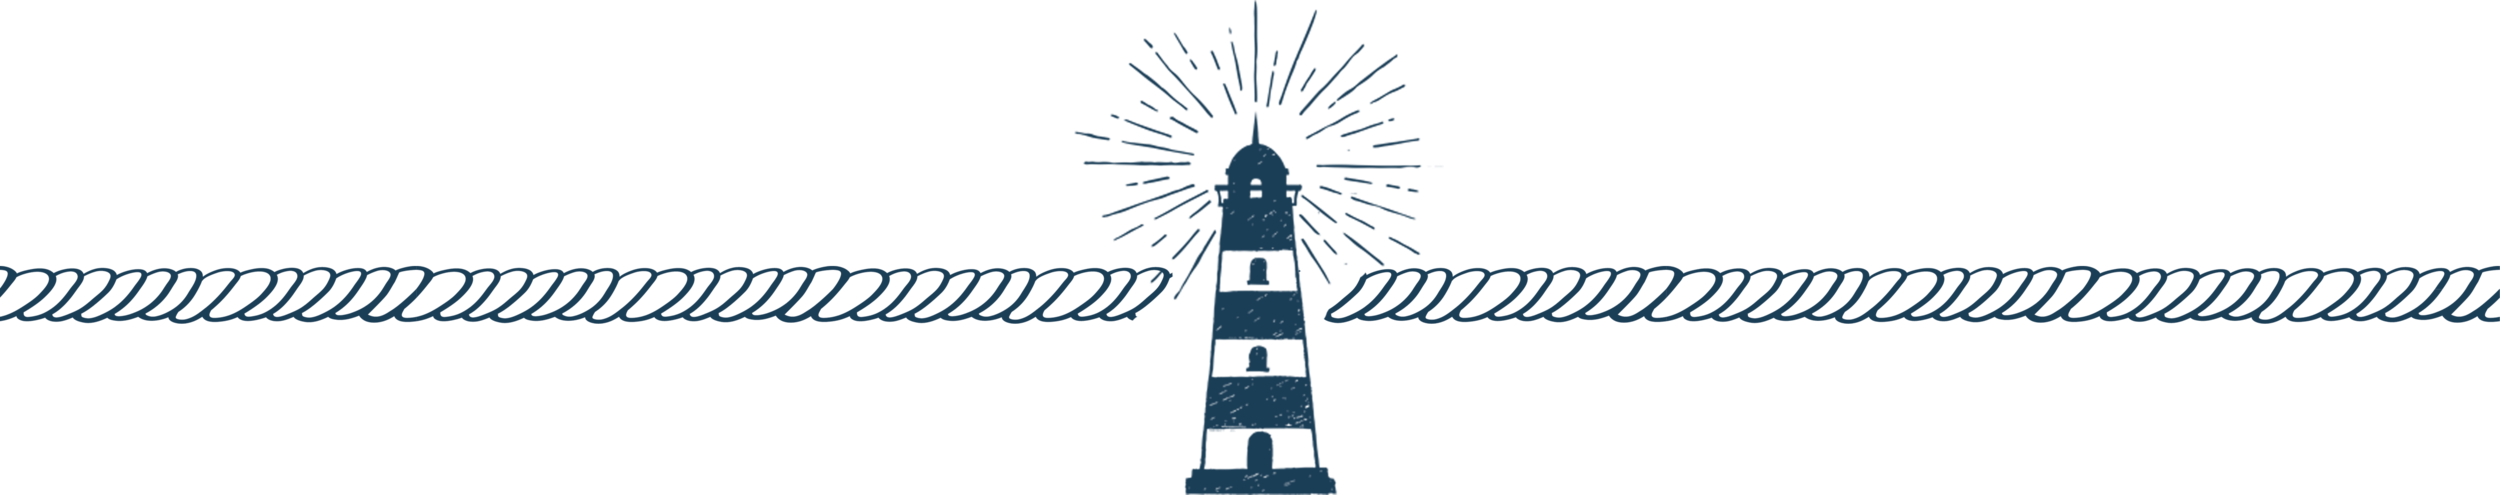 lighthouse rope - blue.png